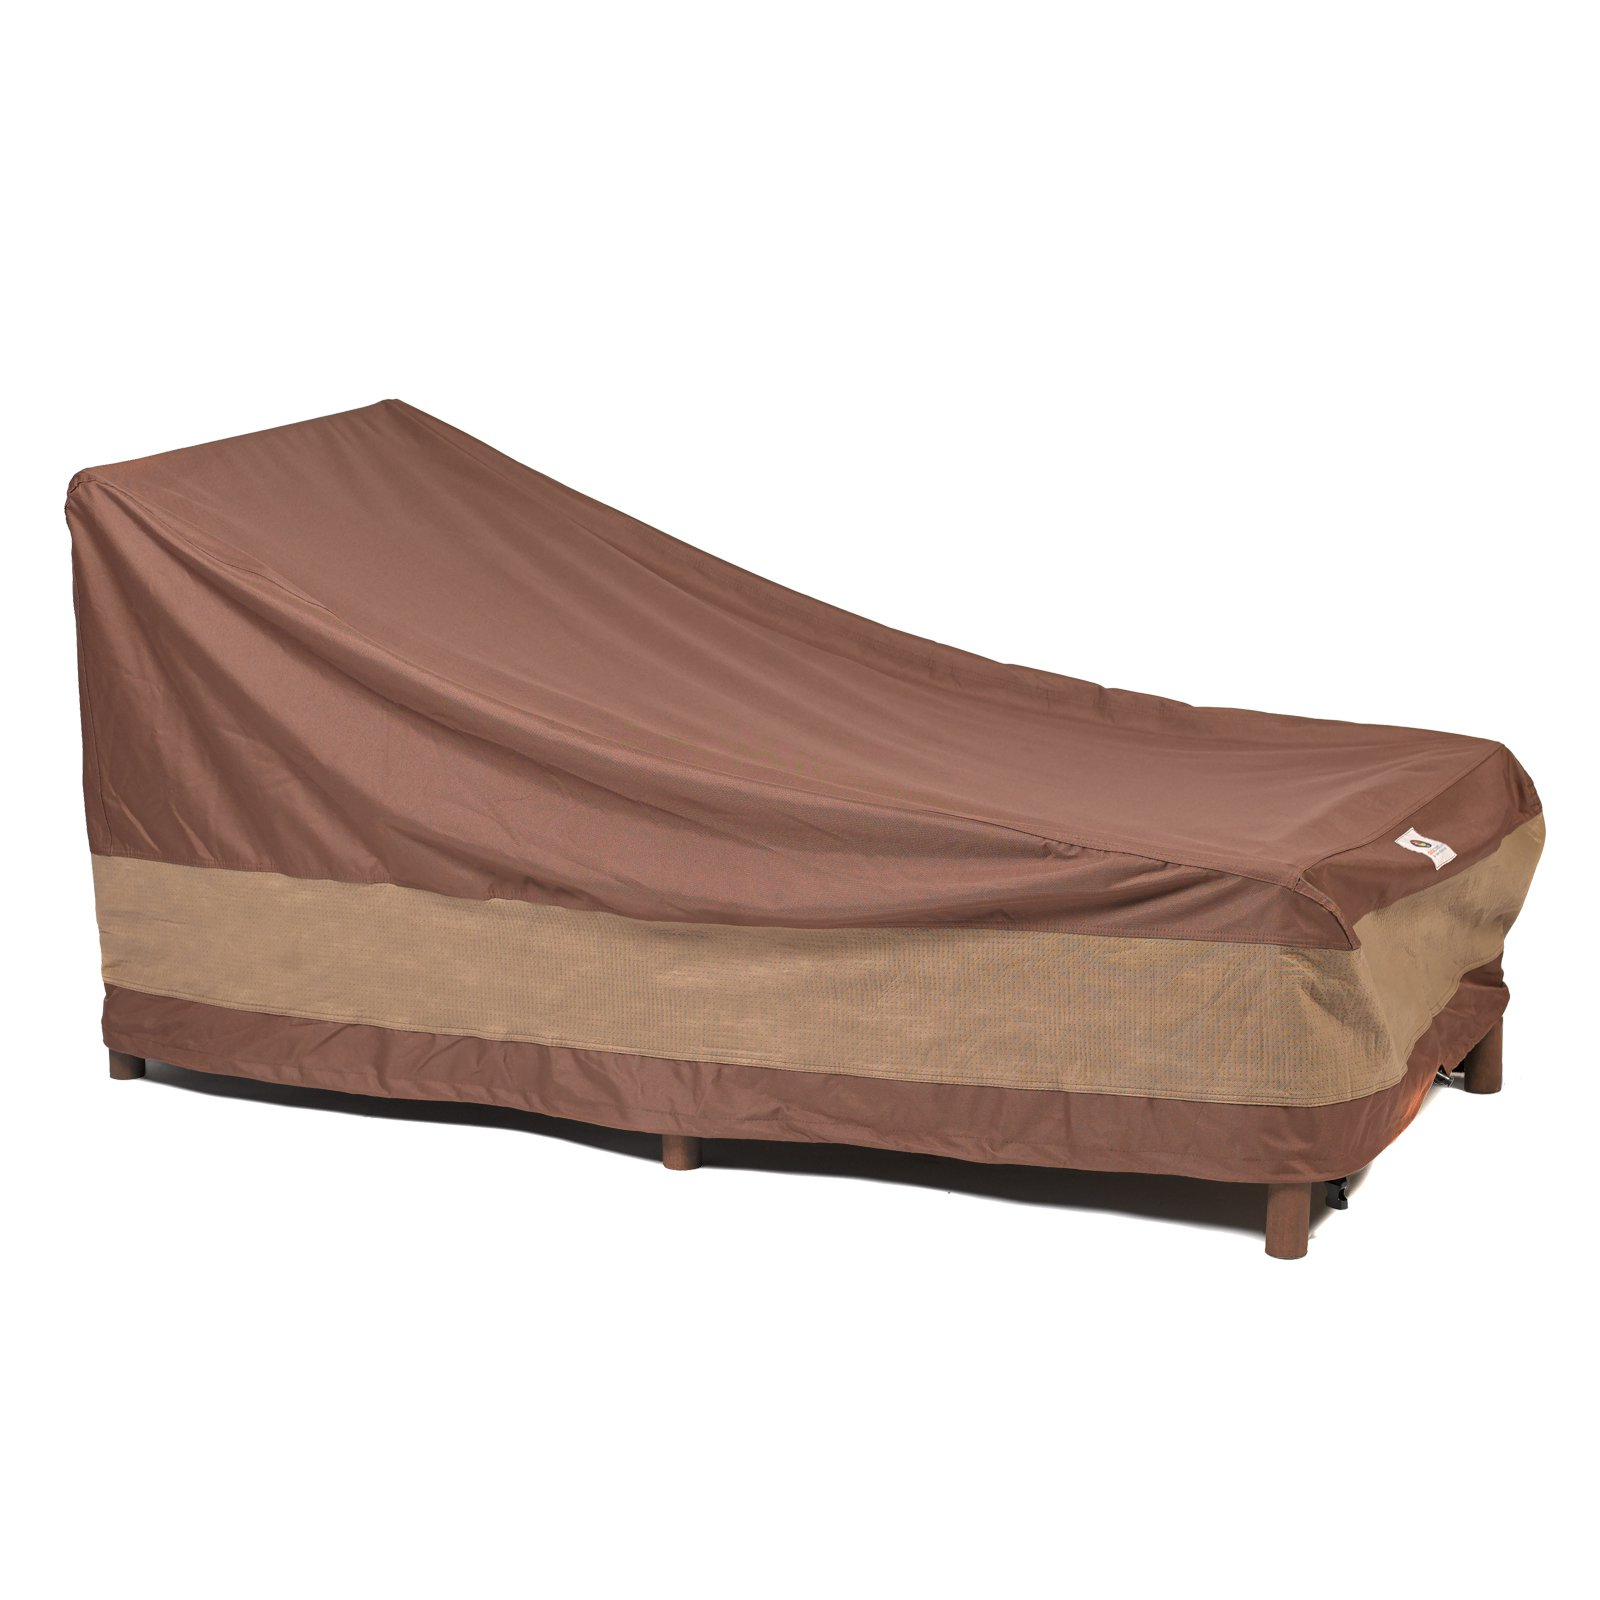 "Duck Covers Ultimate 80"" Patio Chaise Lounge Cover Walmart"